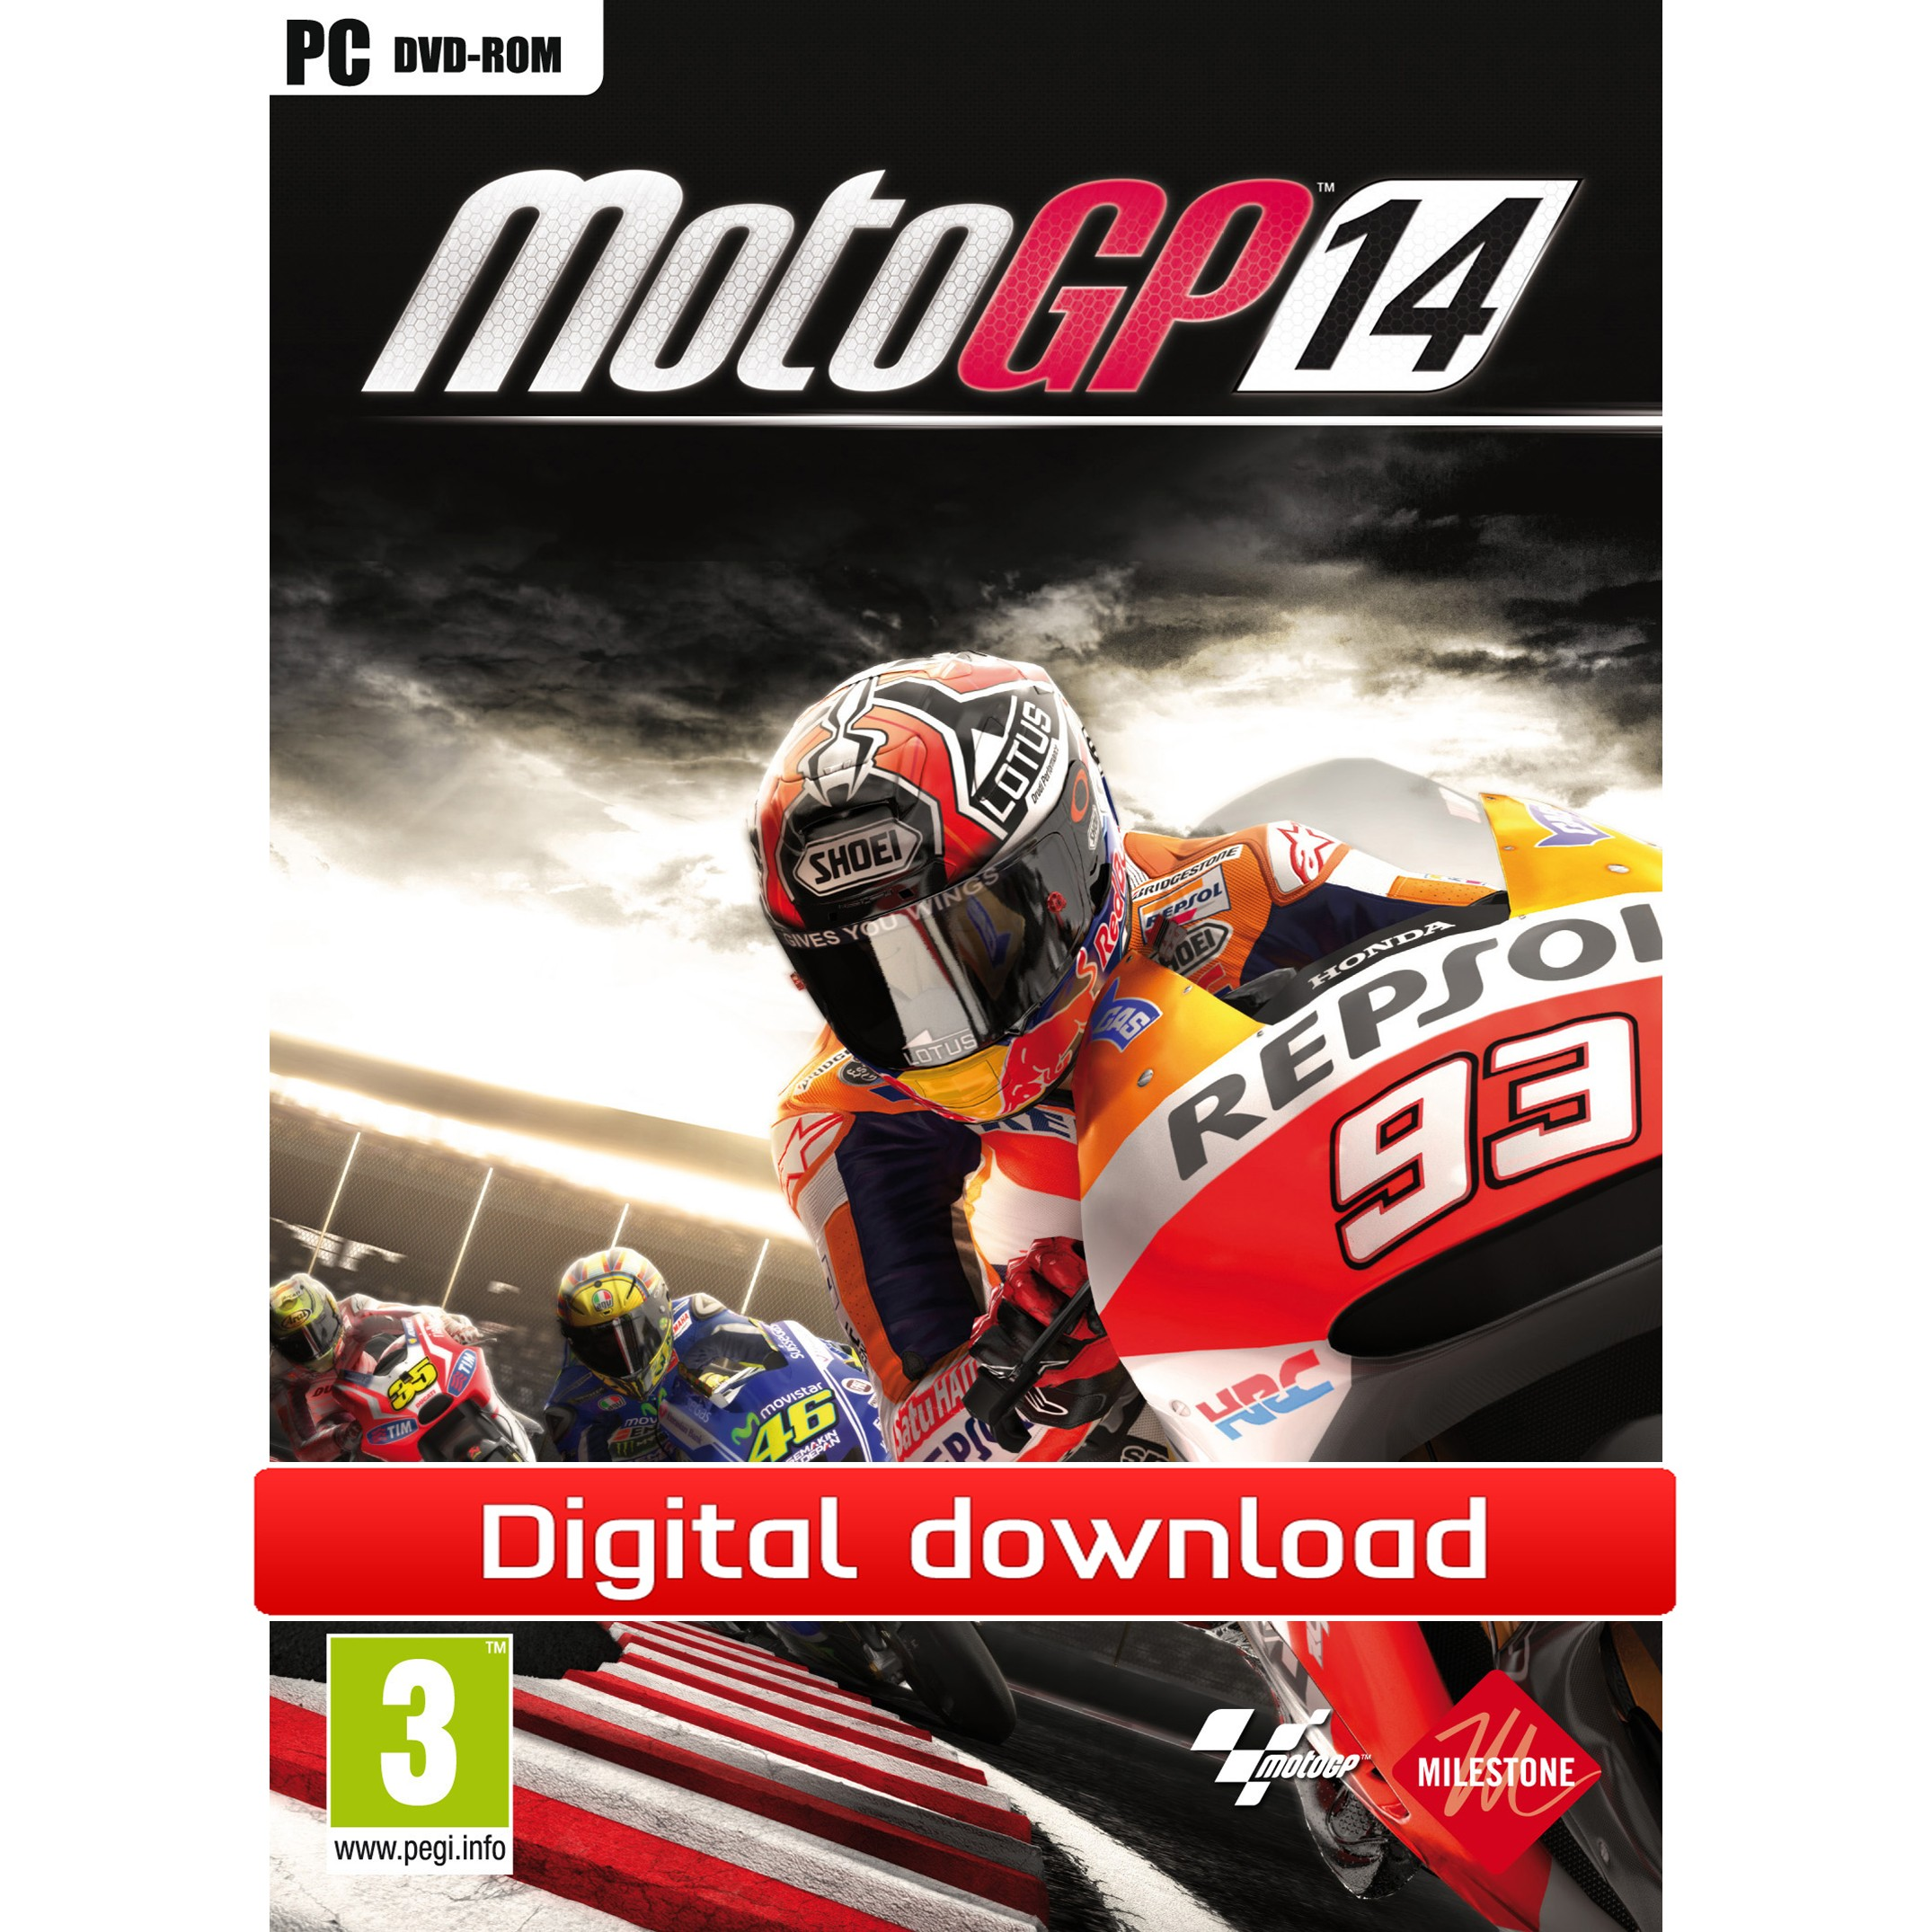 35321 : MotoGP 14 Season Pass (PC nedlastning)